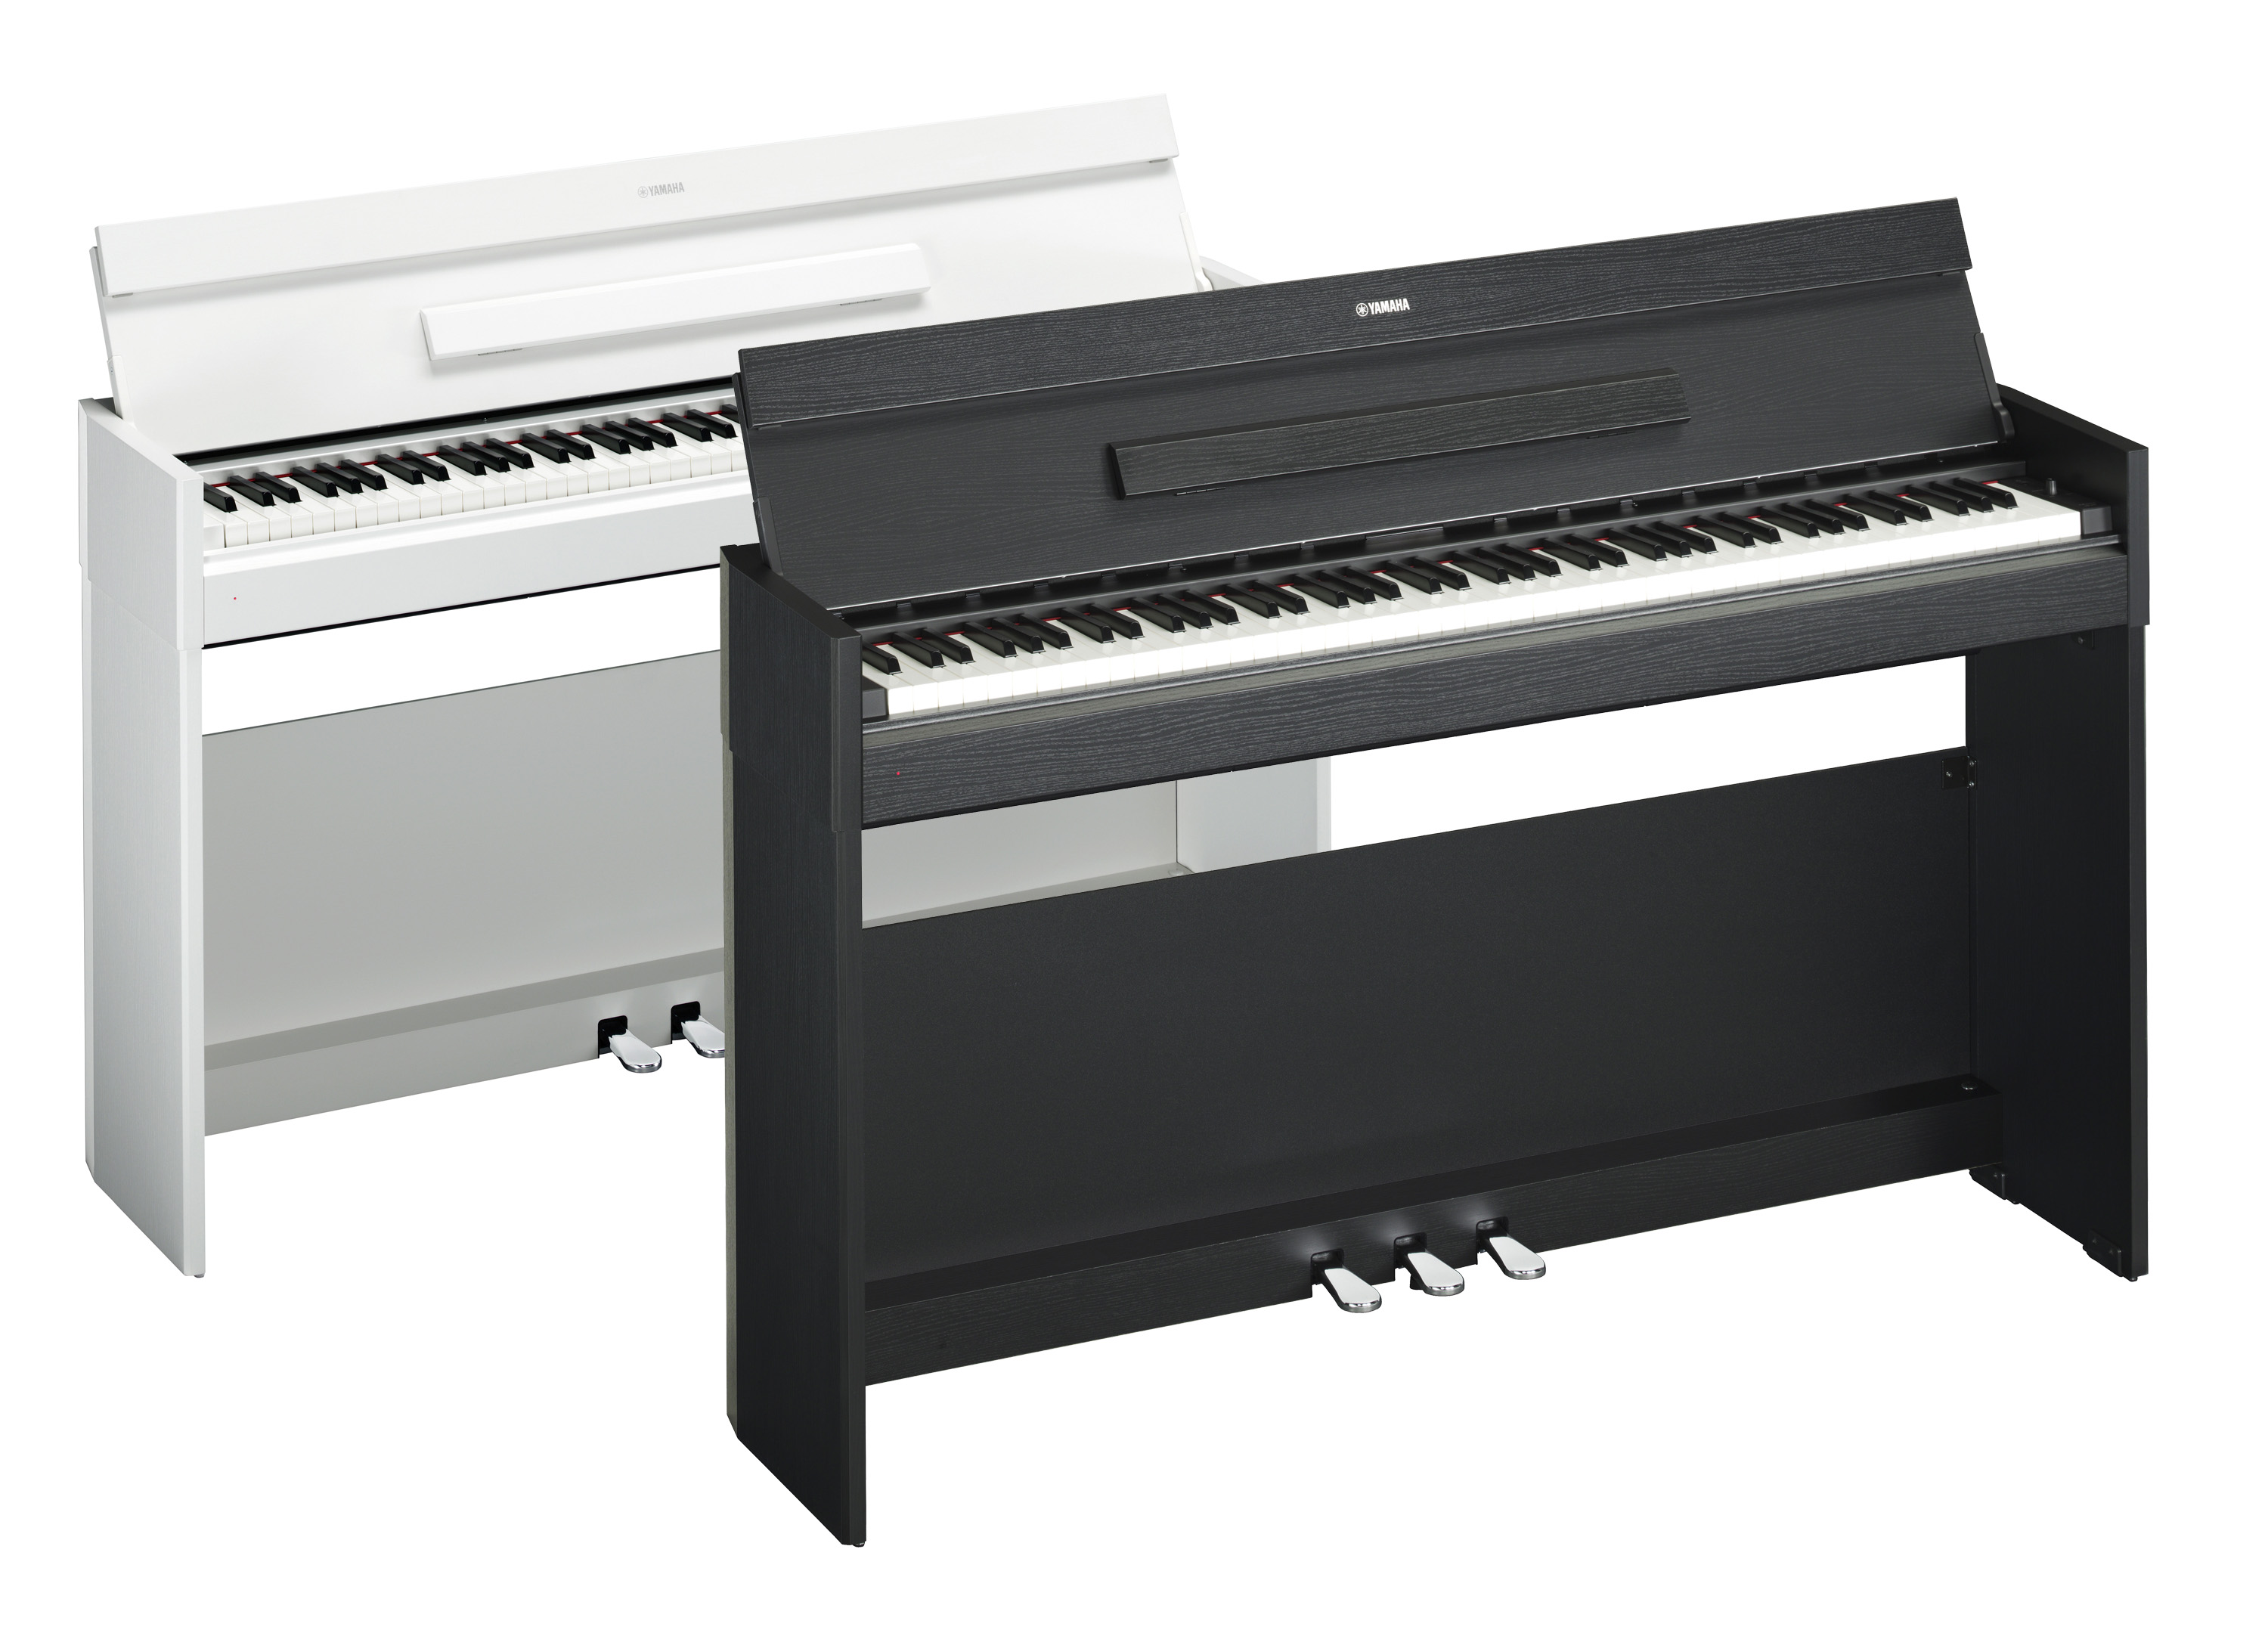 Yamaha ydp s52 arius personal digital piano in black for Yamaha ydp s52